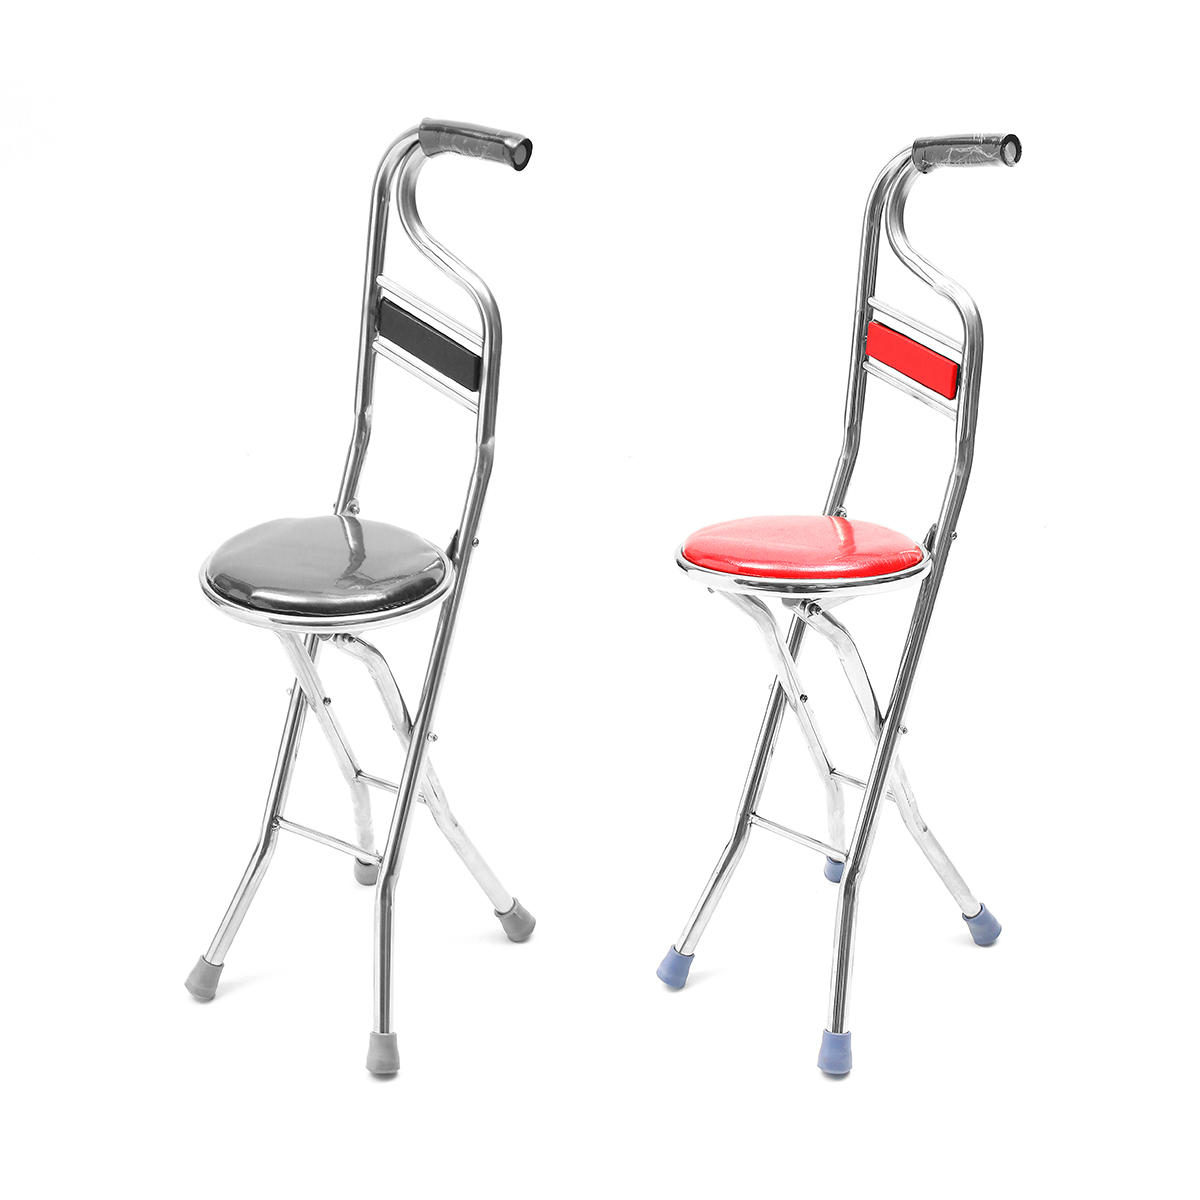 walking stick chair under table tray stainless steel portable folding seat stool customer also viewed